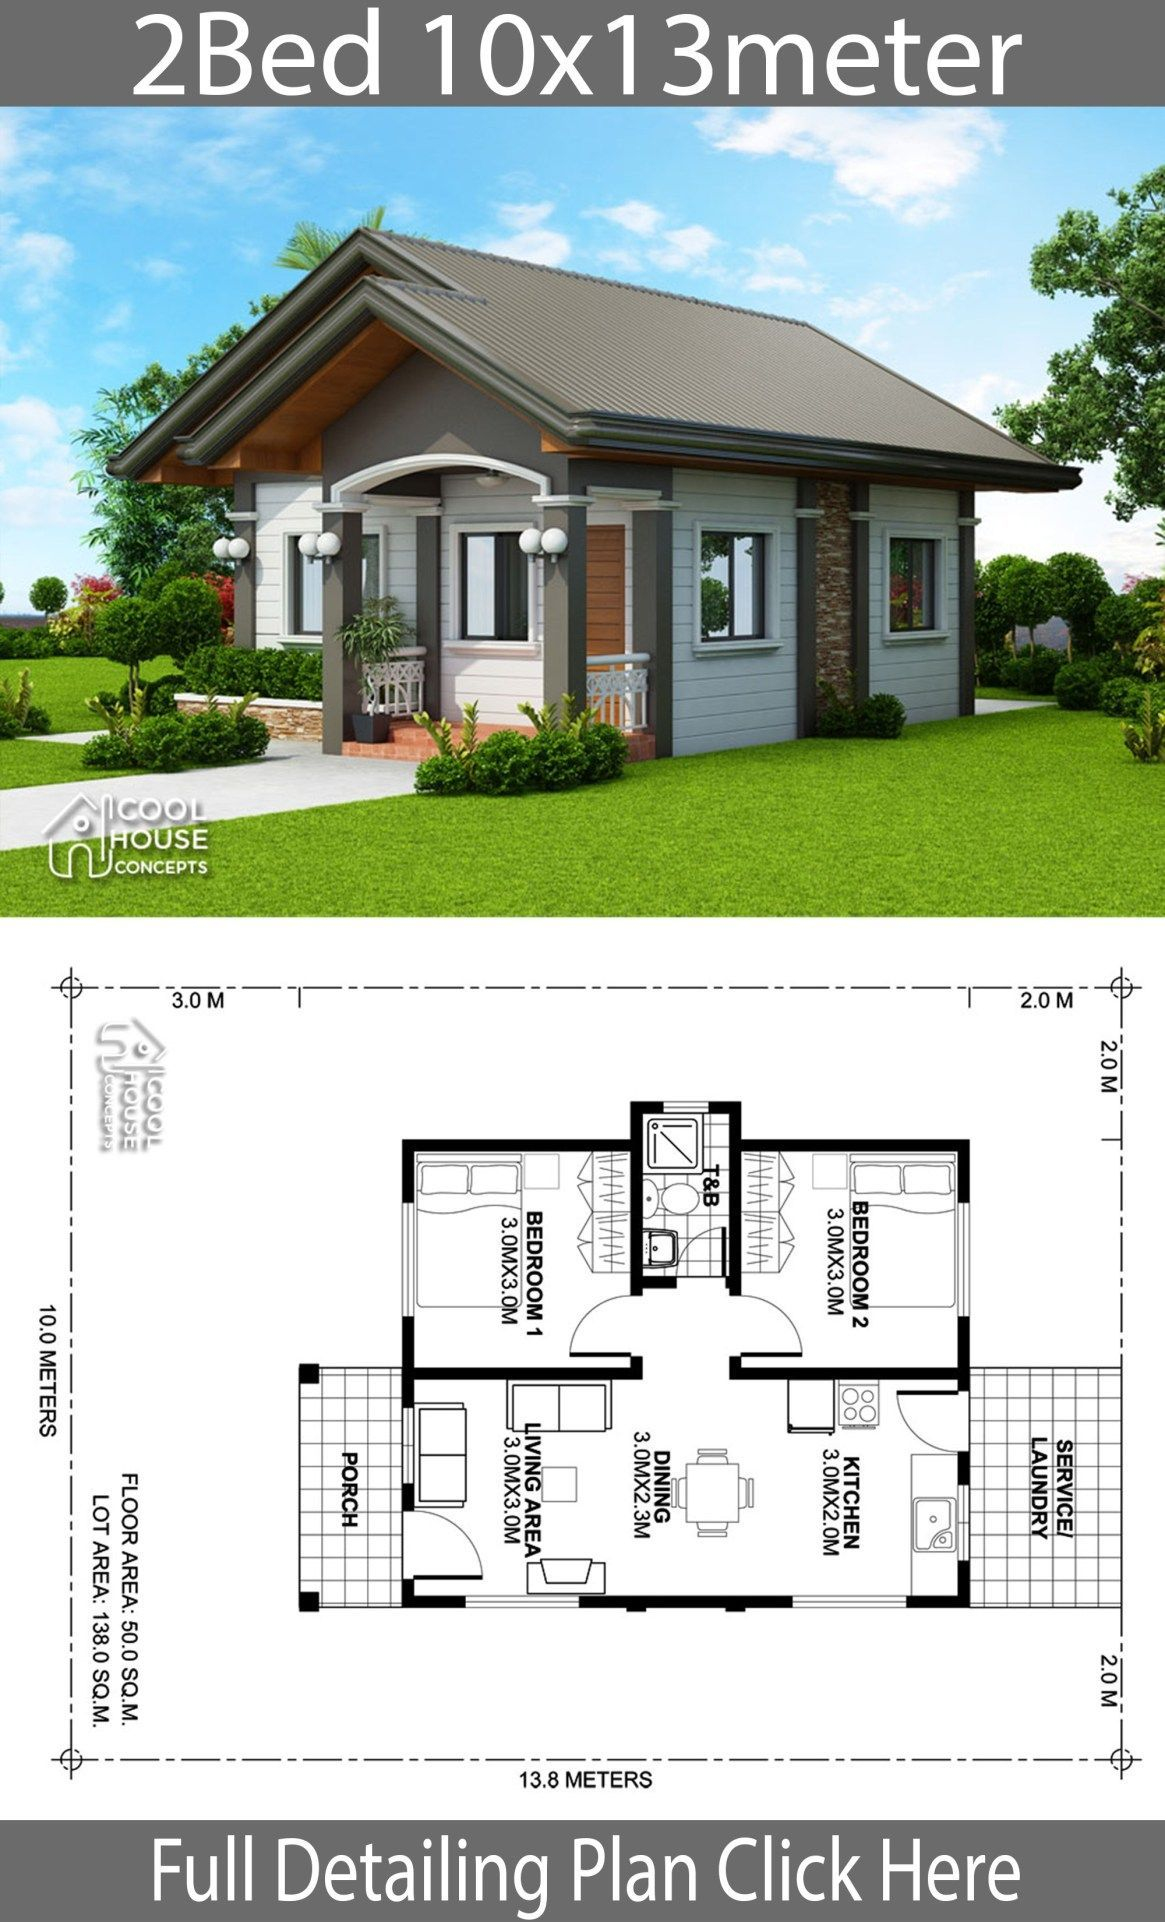 Home Design Plan 10x13m With 2 Bedrooms Home Ideas In 2020 Simple House Design Modern House Plans House Plan Gallery